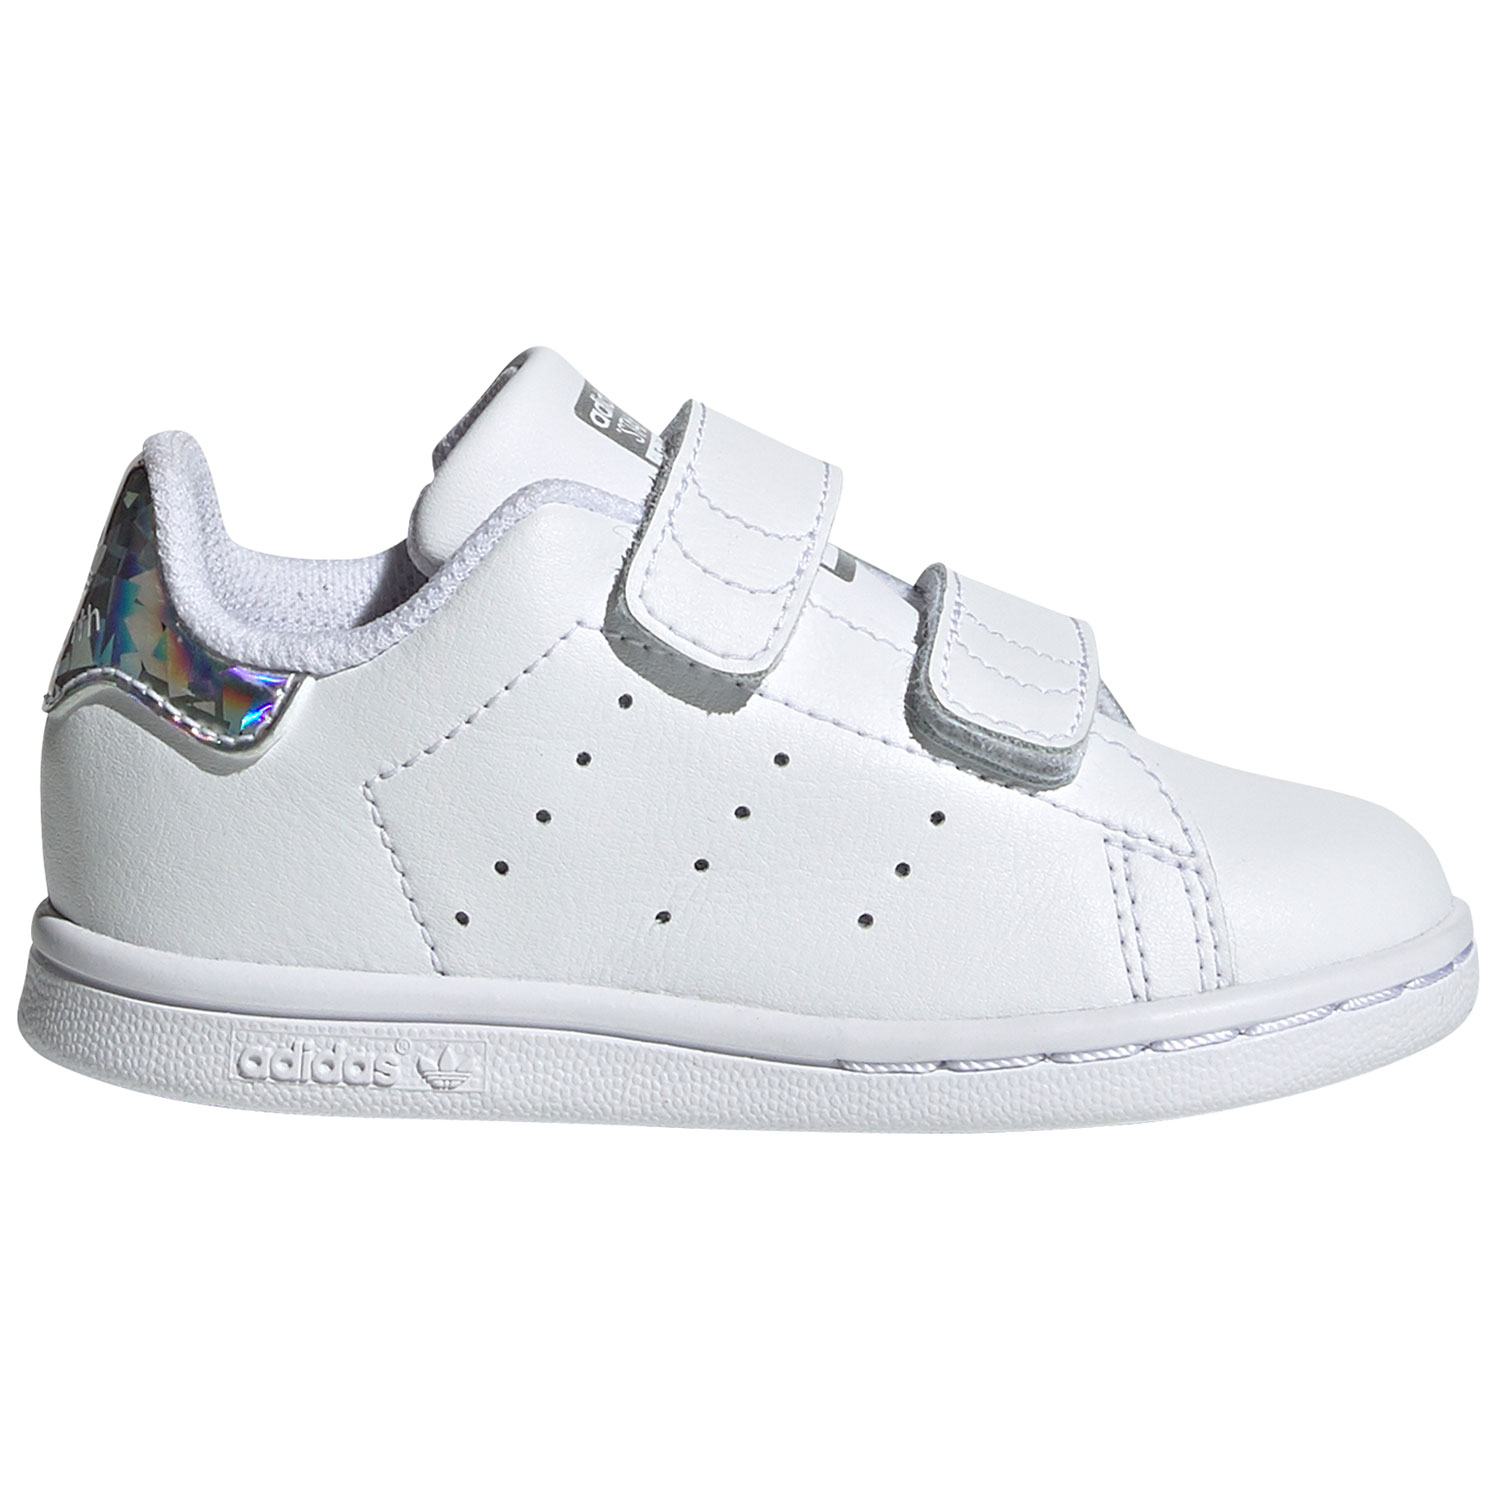 quality design a8ecd 67df2 adidas Originals Stan Smith CF I Kinder Sneaker weiß metallic EE8485